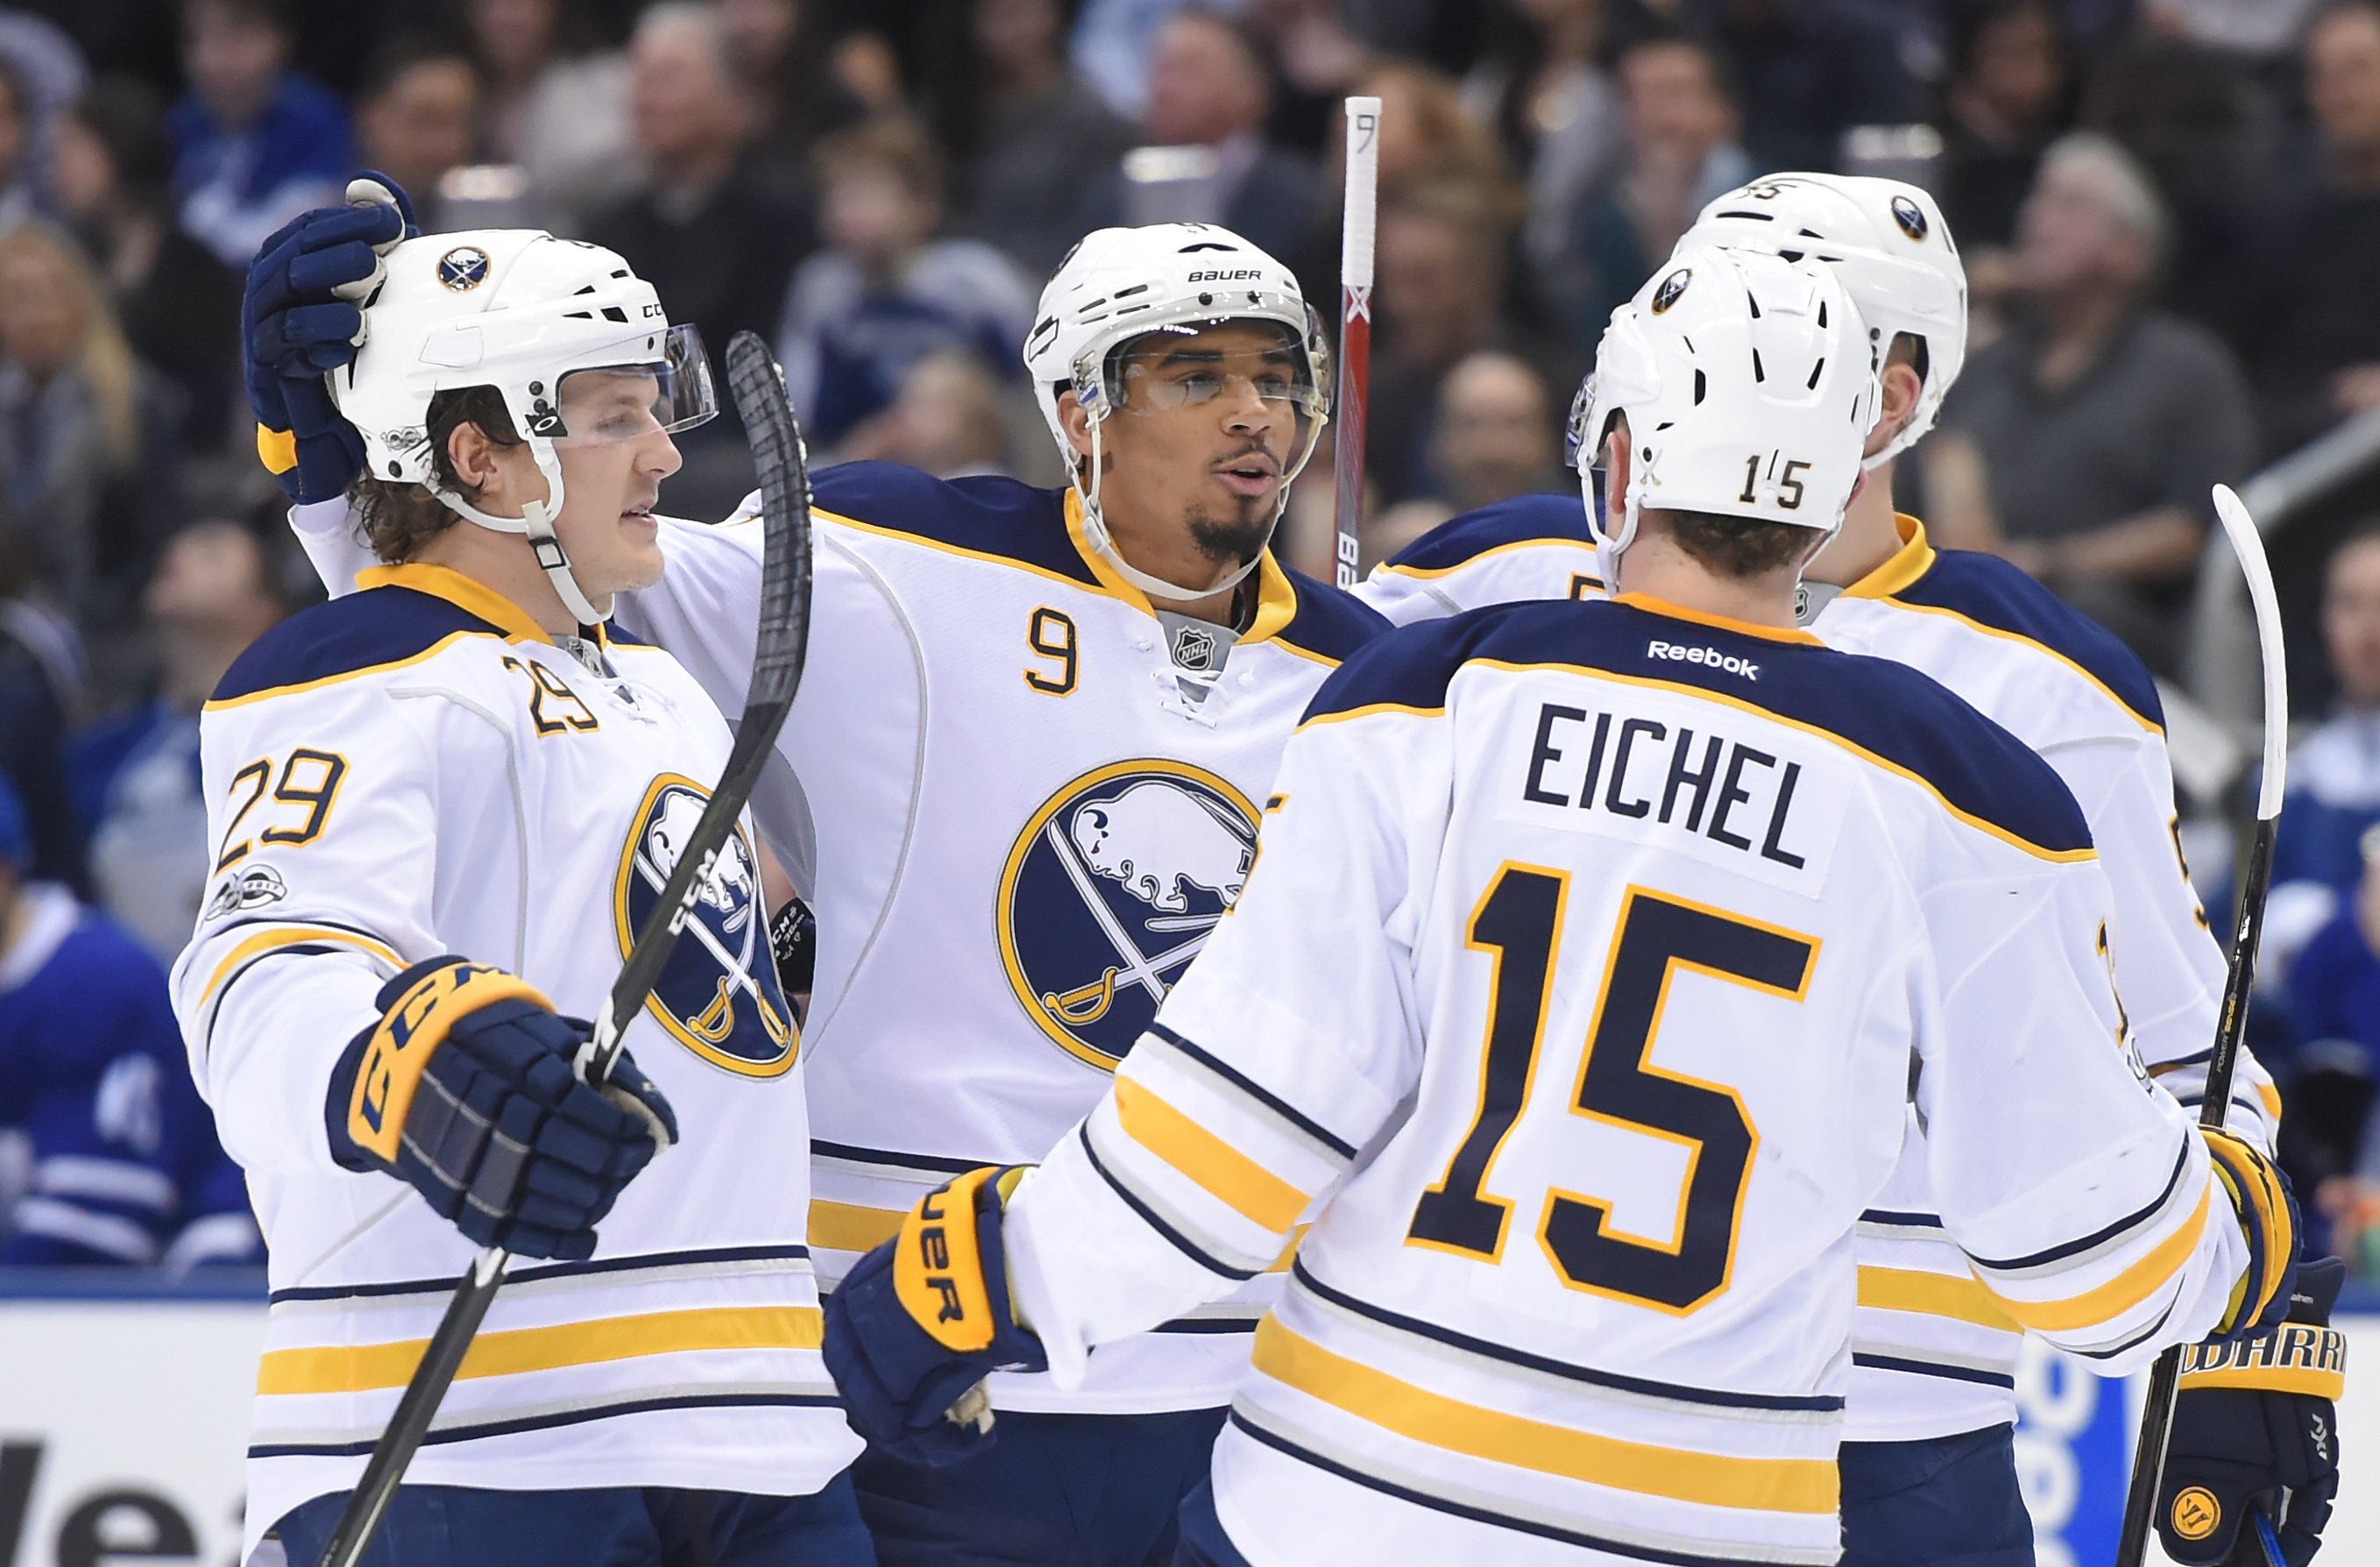 Evander Kane (9) celebrated two goals Saturday, including one with Jake McCabe and Jack Eichel. (USA Today Sports)